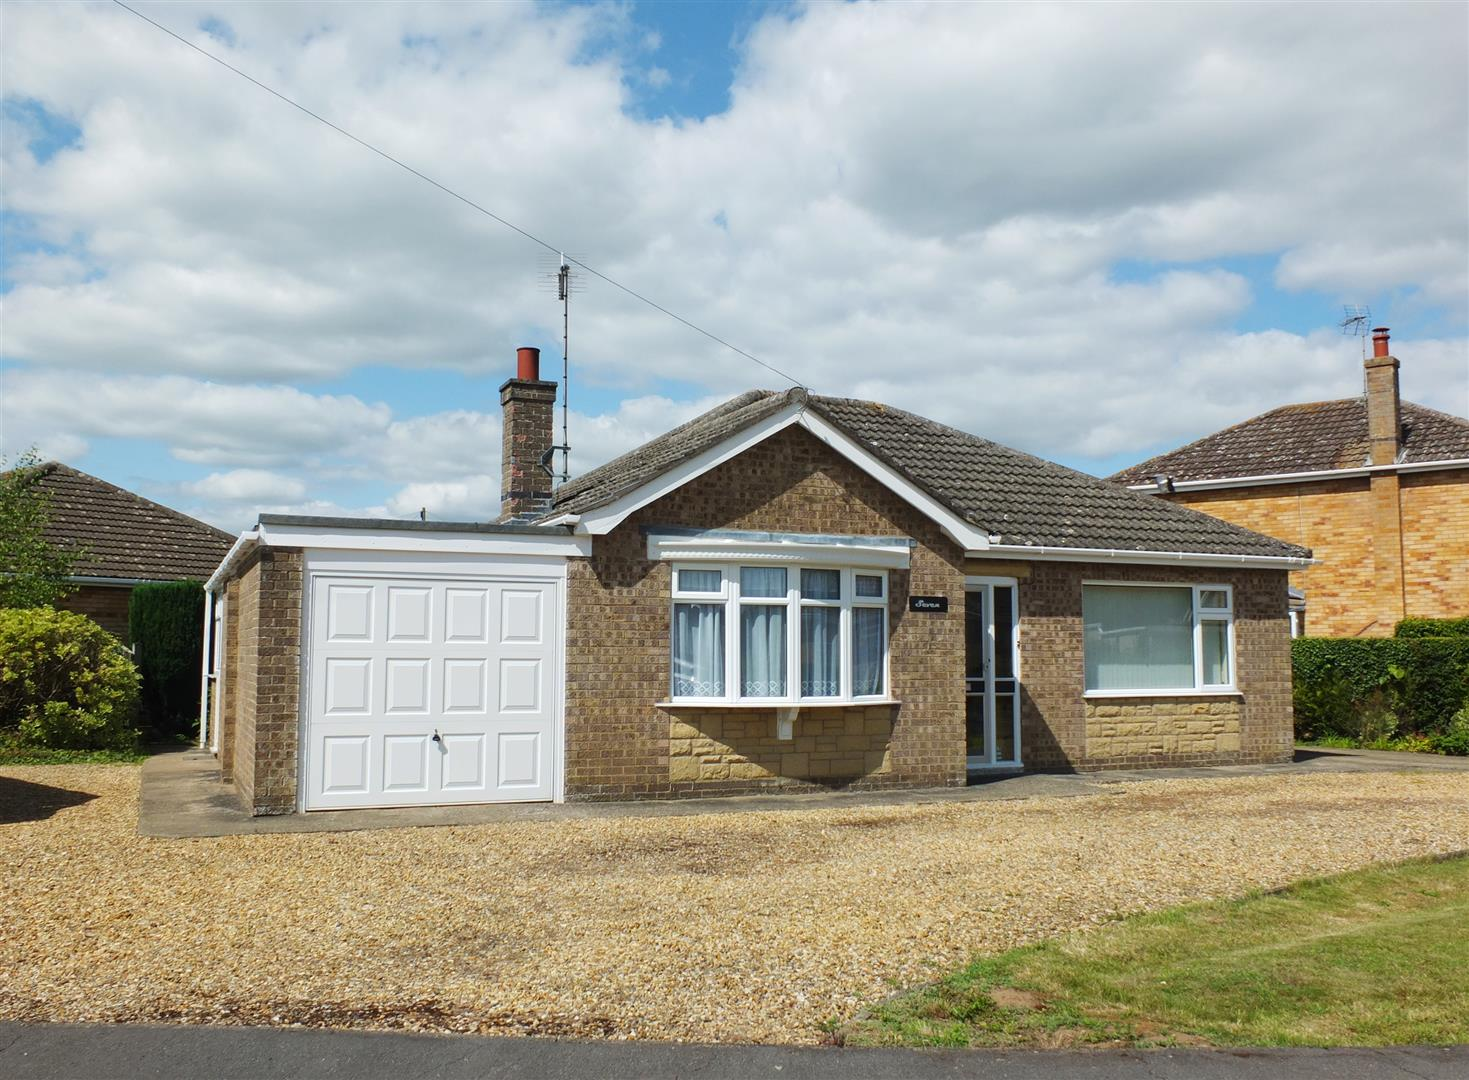 2 bed detached bungalow for sale in Long Sutton Spalding, PE12 9BZ, PE12